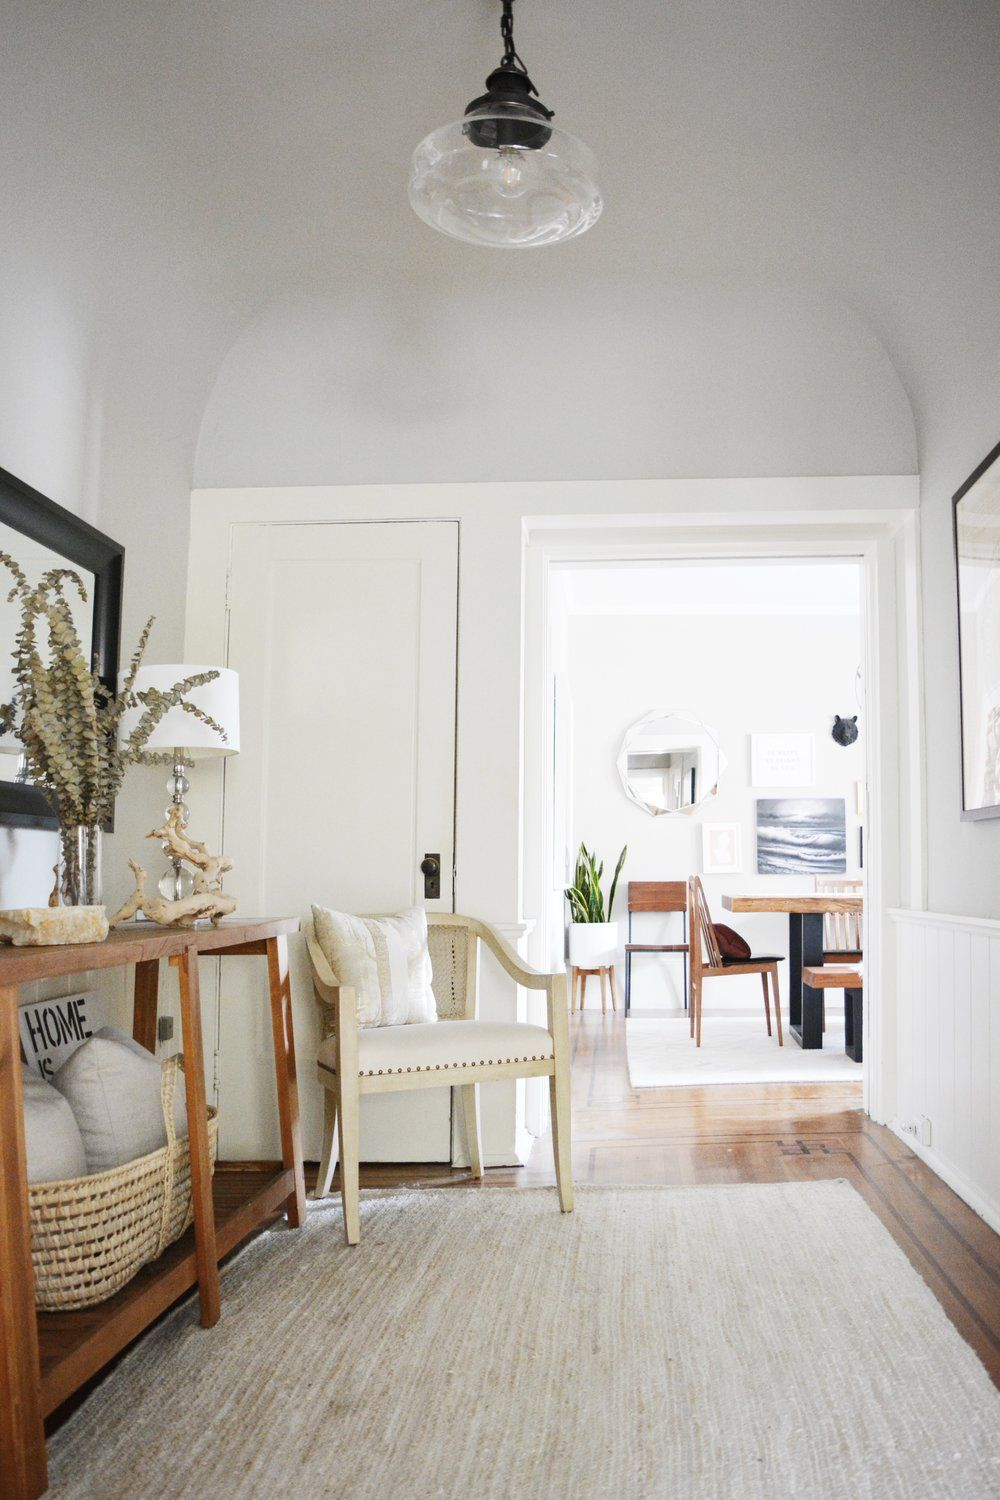 Filbert Foyer - Angela Grace Design | Hallways & Entryways ...